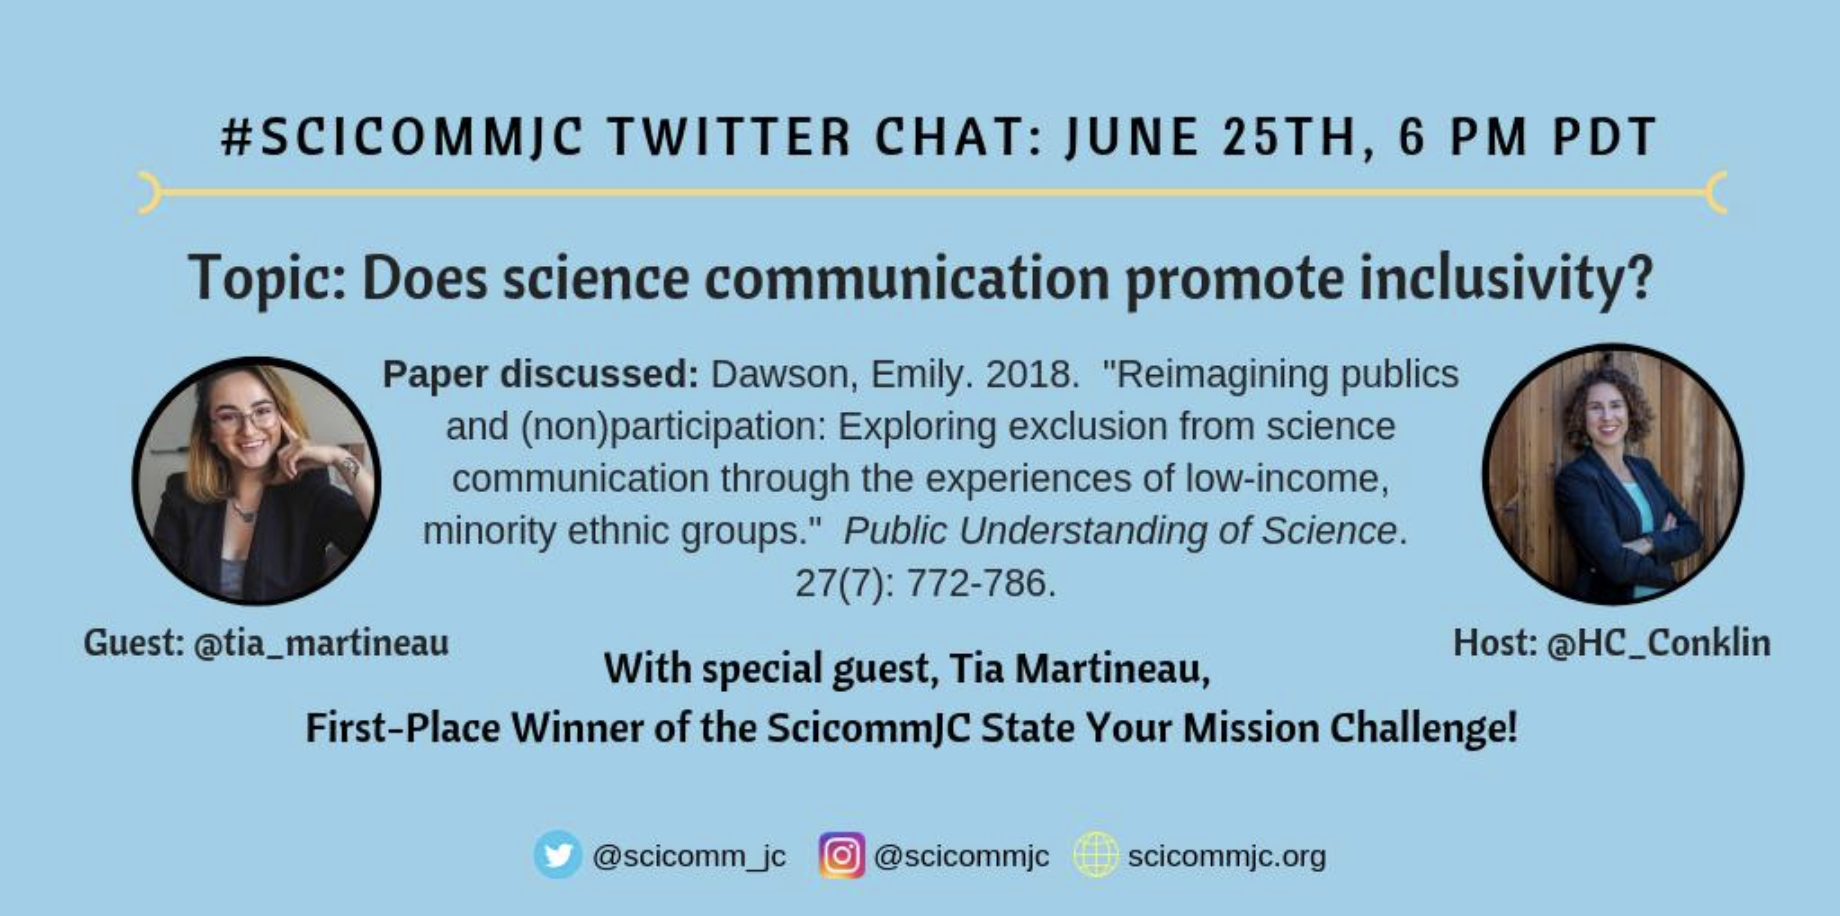 Poster announcing Twitter chat where inclusivity in science communication is discussed